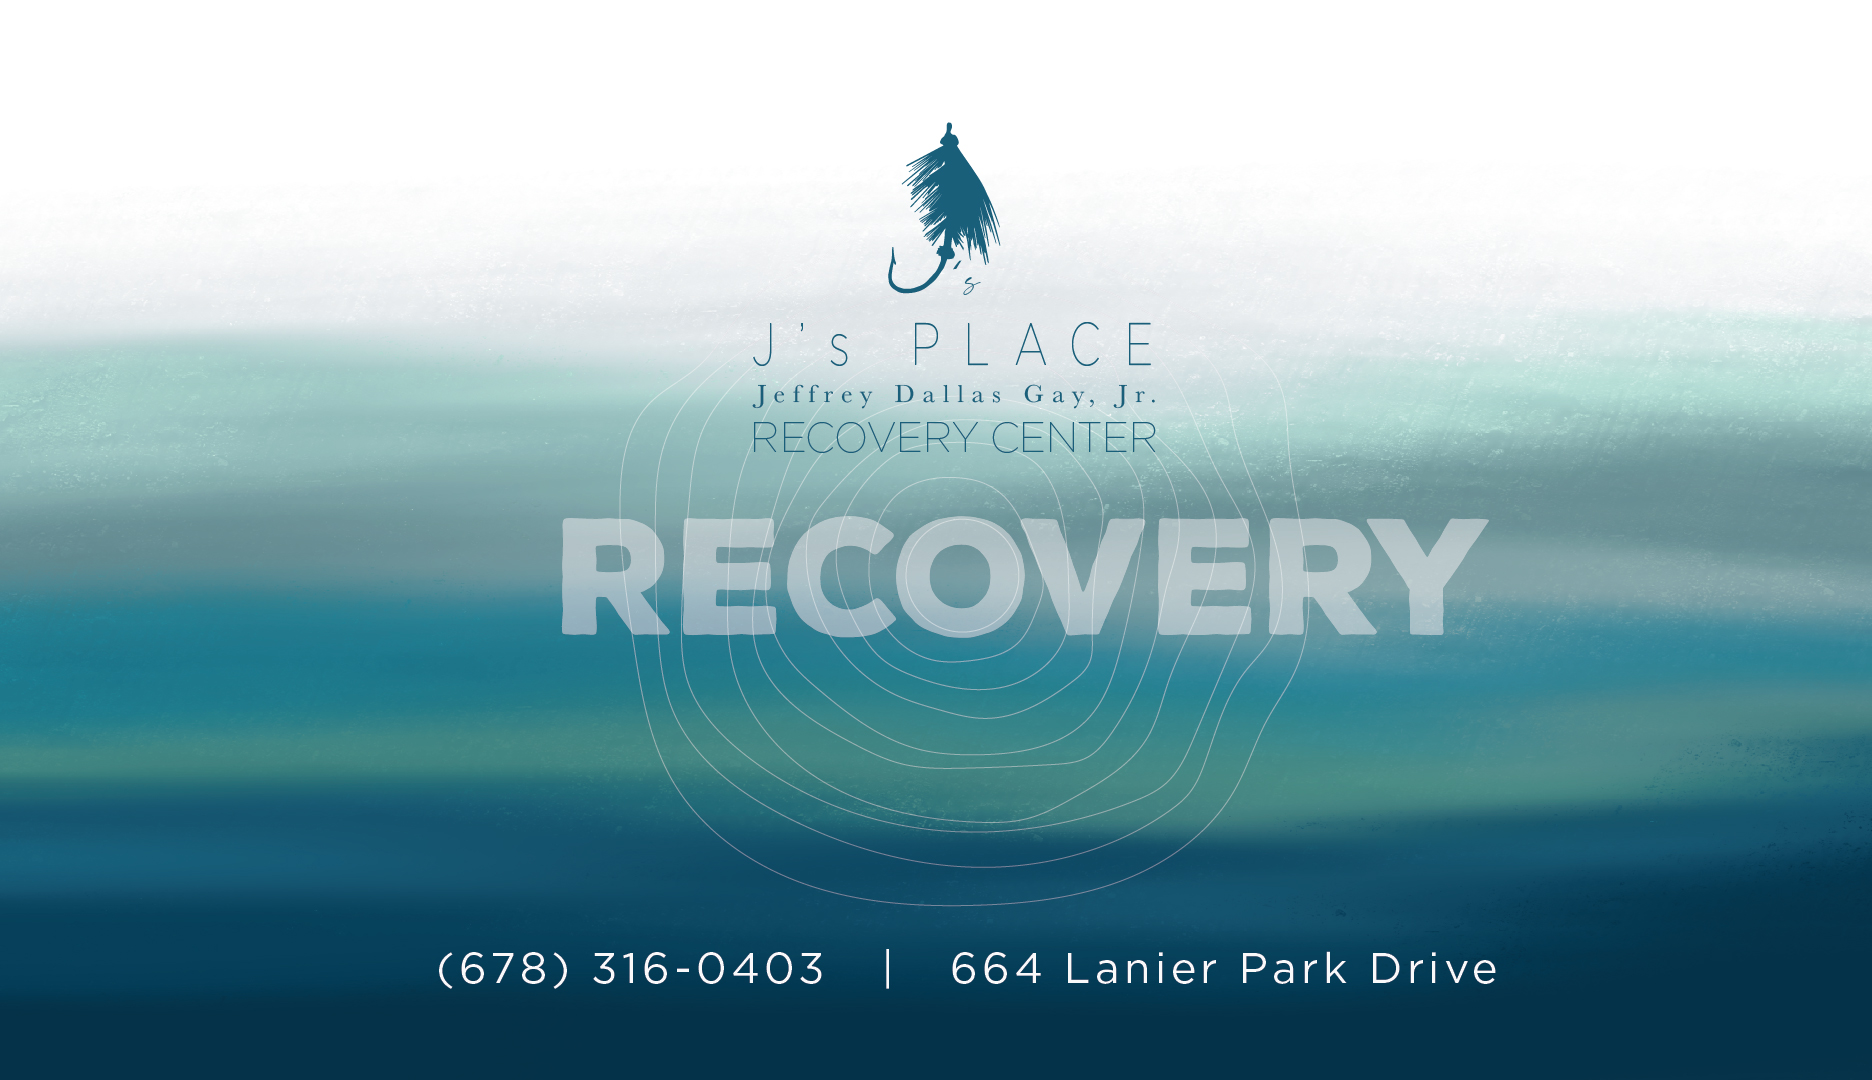 J's Place Recovery Center